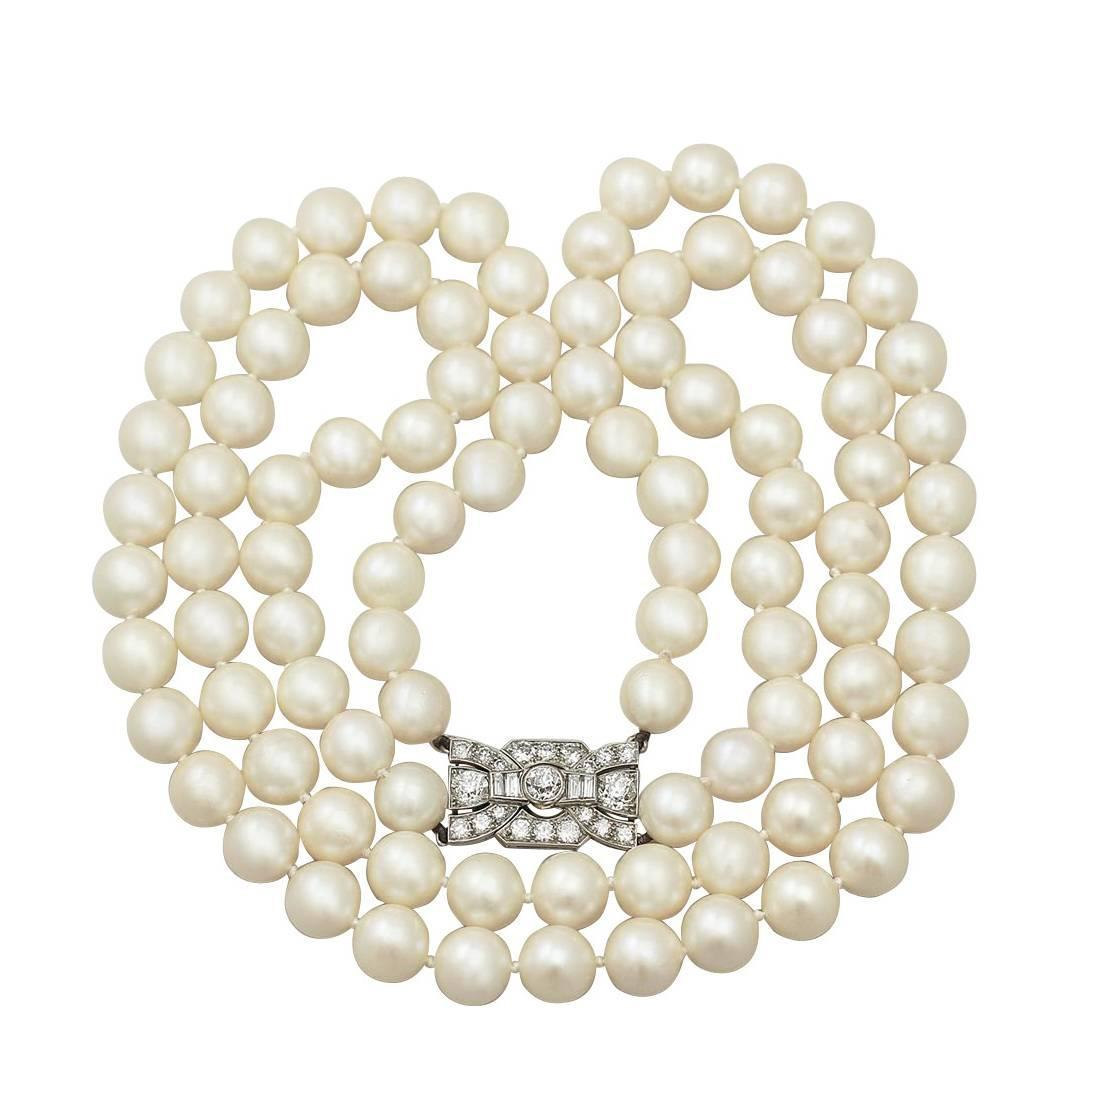 Double Strand Pearl Necklace With 178ct Diamond Set Clasp  Antique &  Vintage